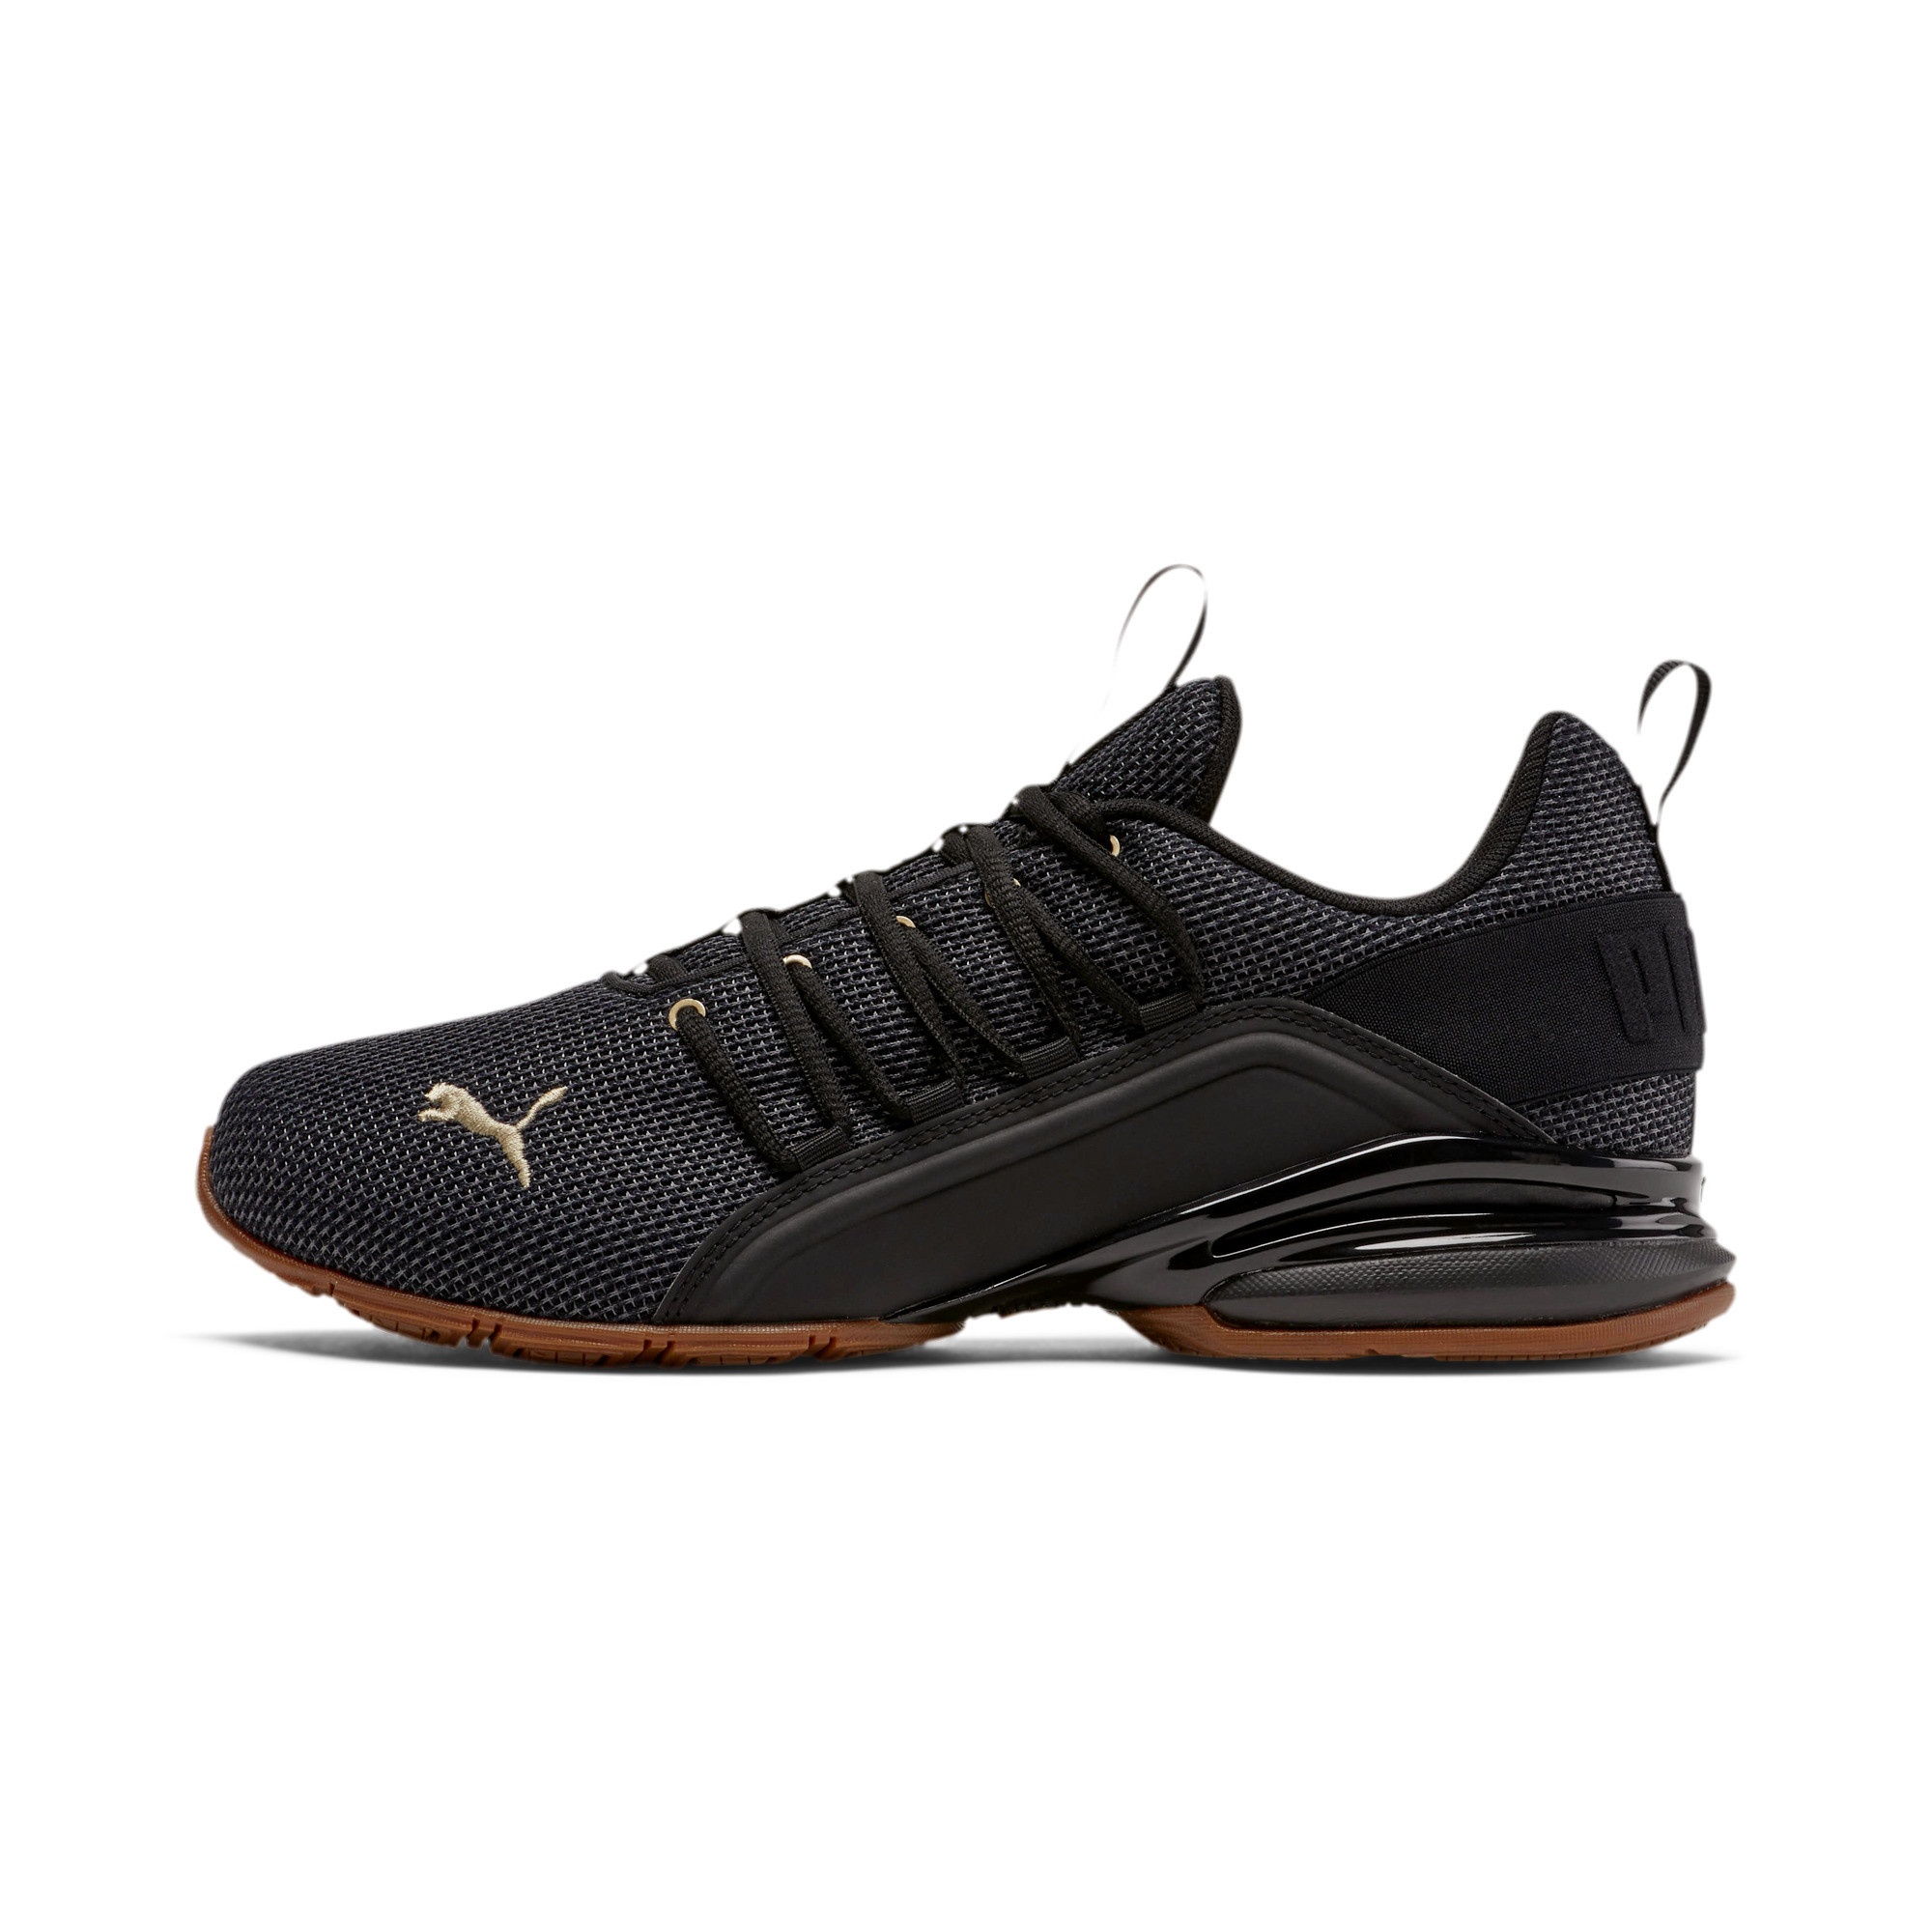 PUMA-Men-039-s-Axelion-Mesh-Training-Shoes thumbnail 14